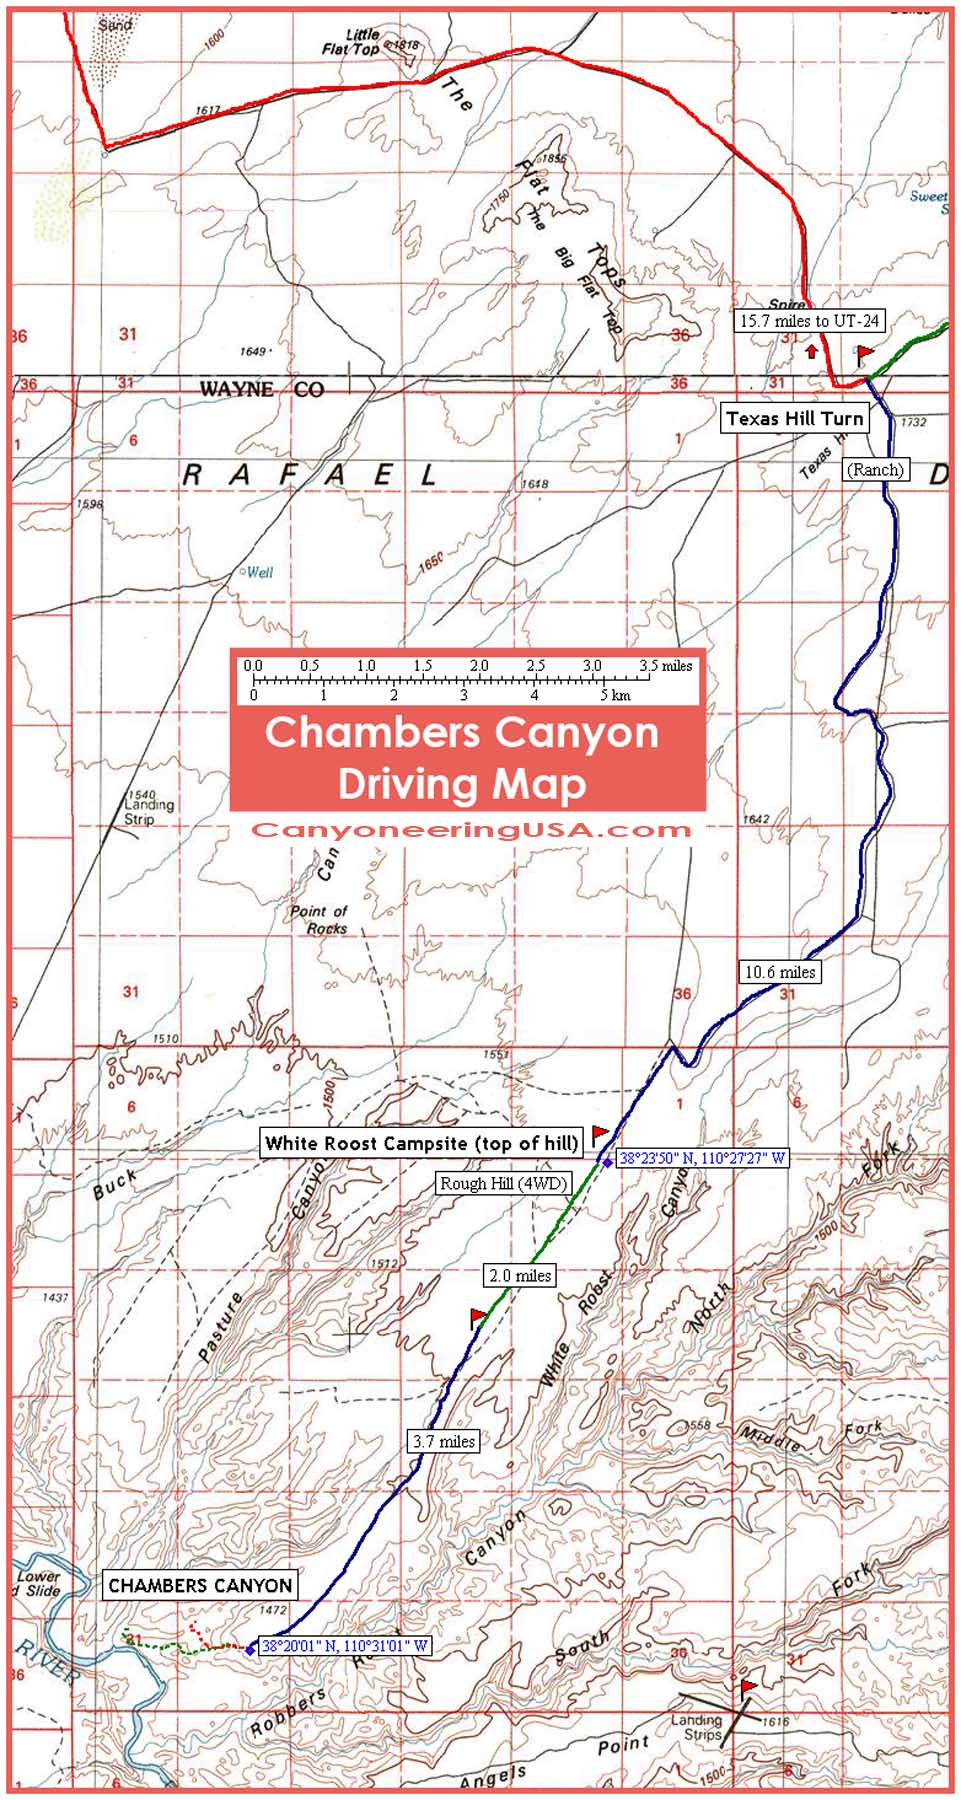 This Chambers Canyon area driving map will help you locate Big Bad Ben. Click on the image to view in higher resolution.